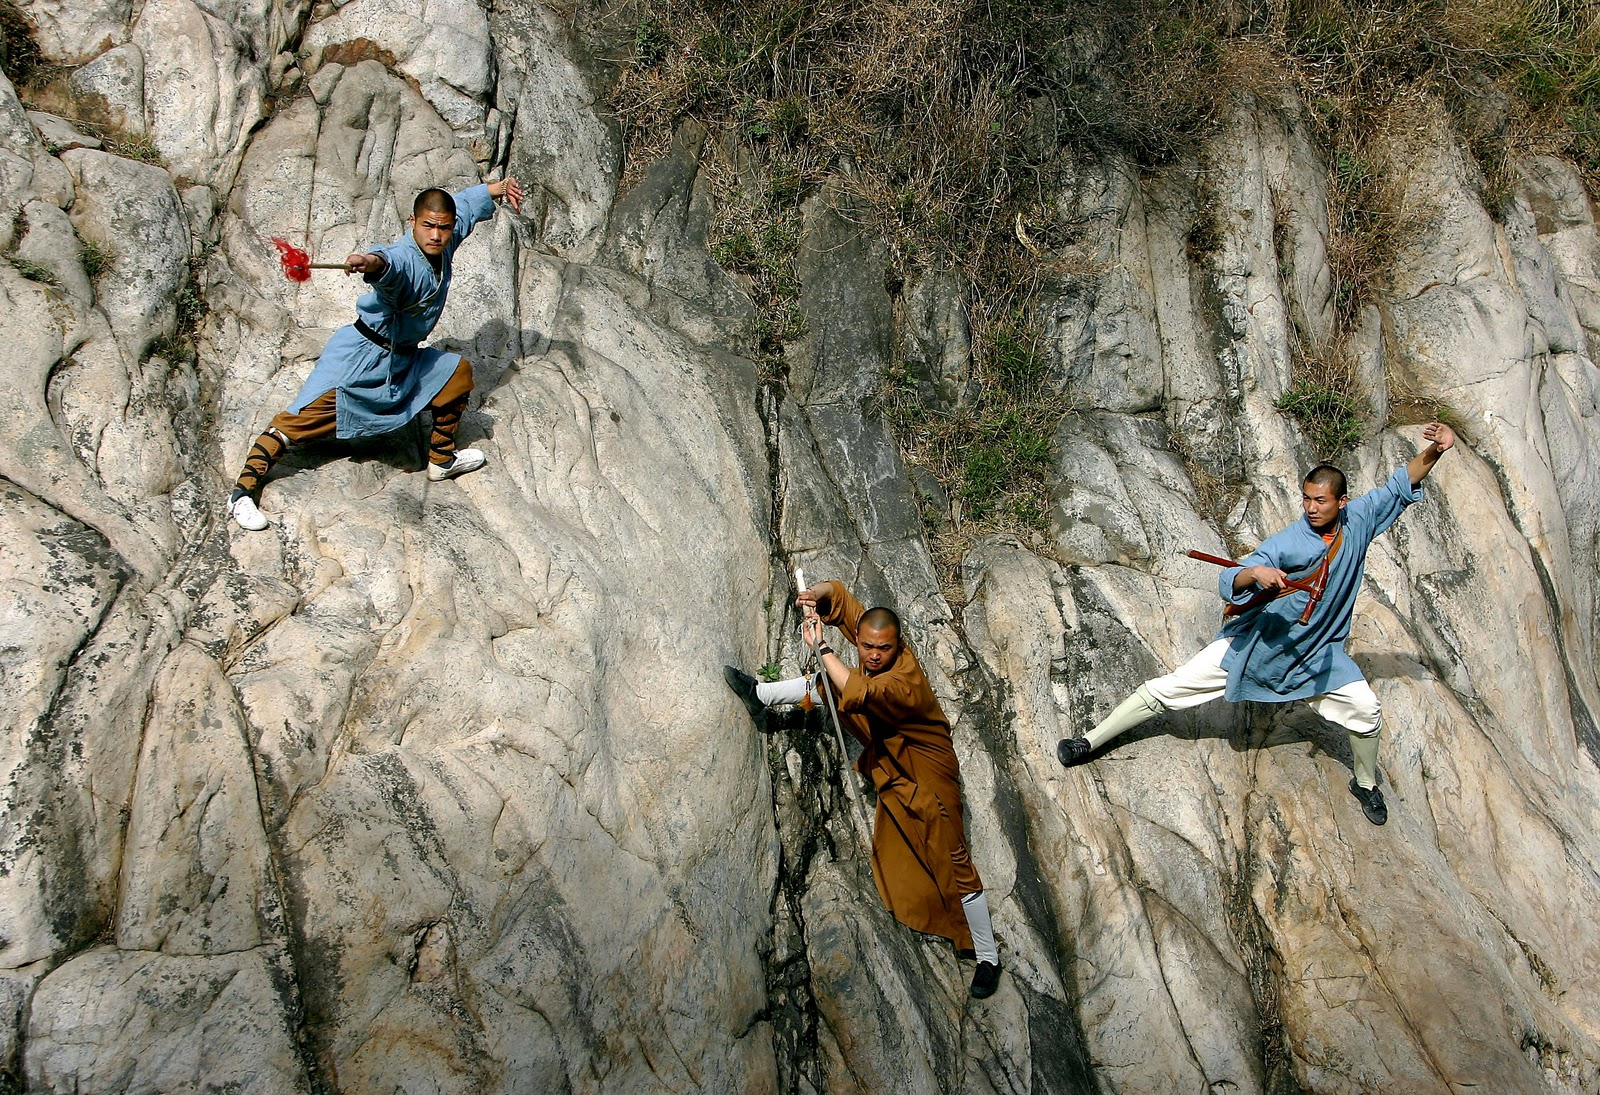 shaolin temple wallpaper - photo #13